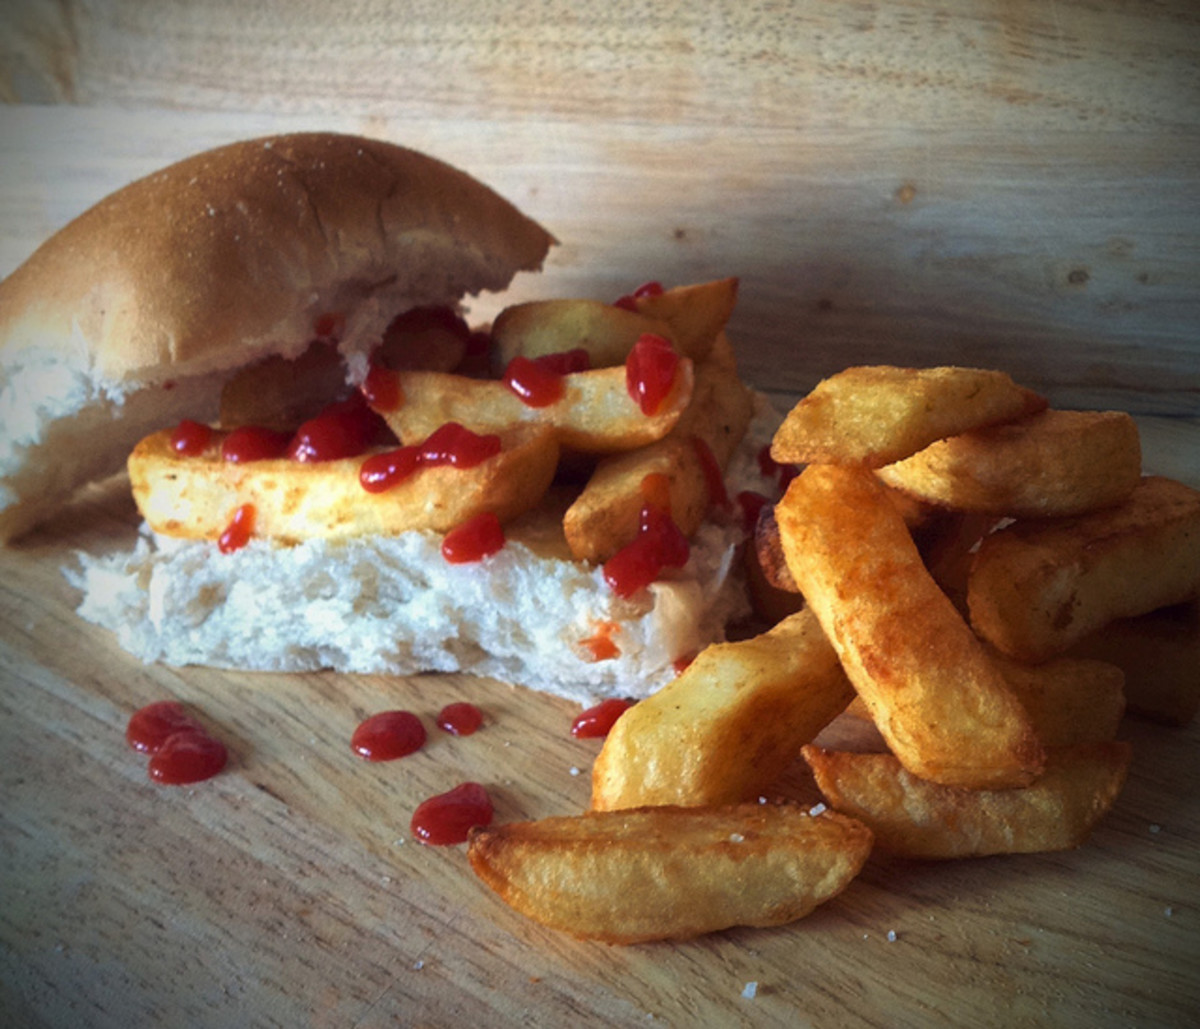 The Chip Butty: A Greasy, Guilty Pleasure!